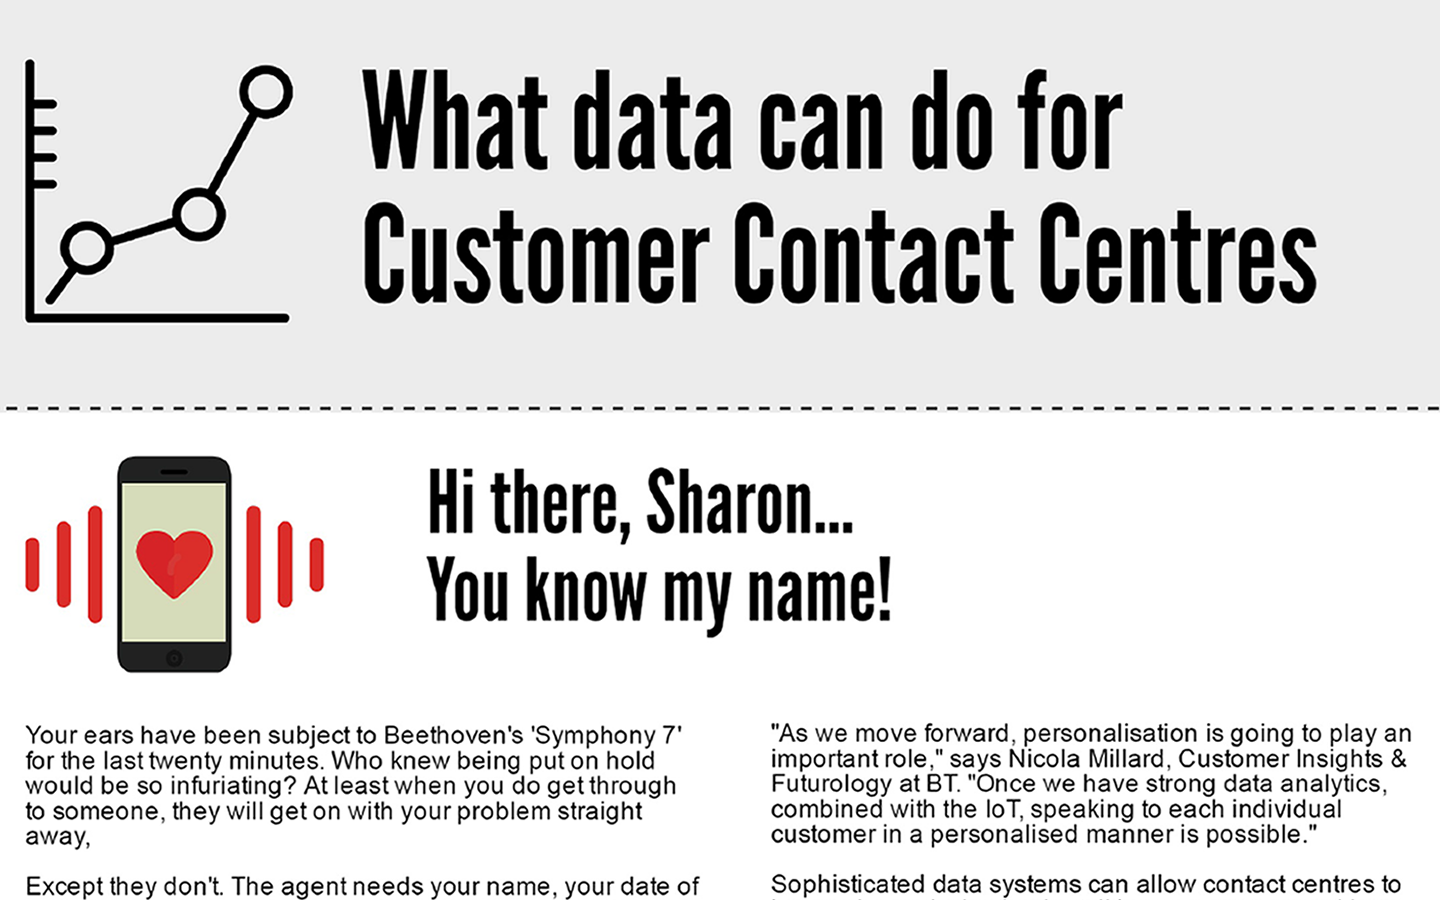 WHAT DATA CAN DO FOR CUSTOMER CONTACT CENTRES